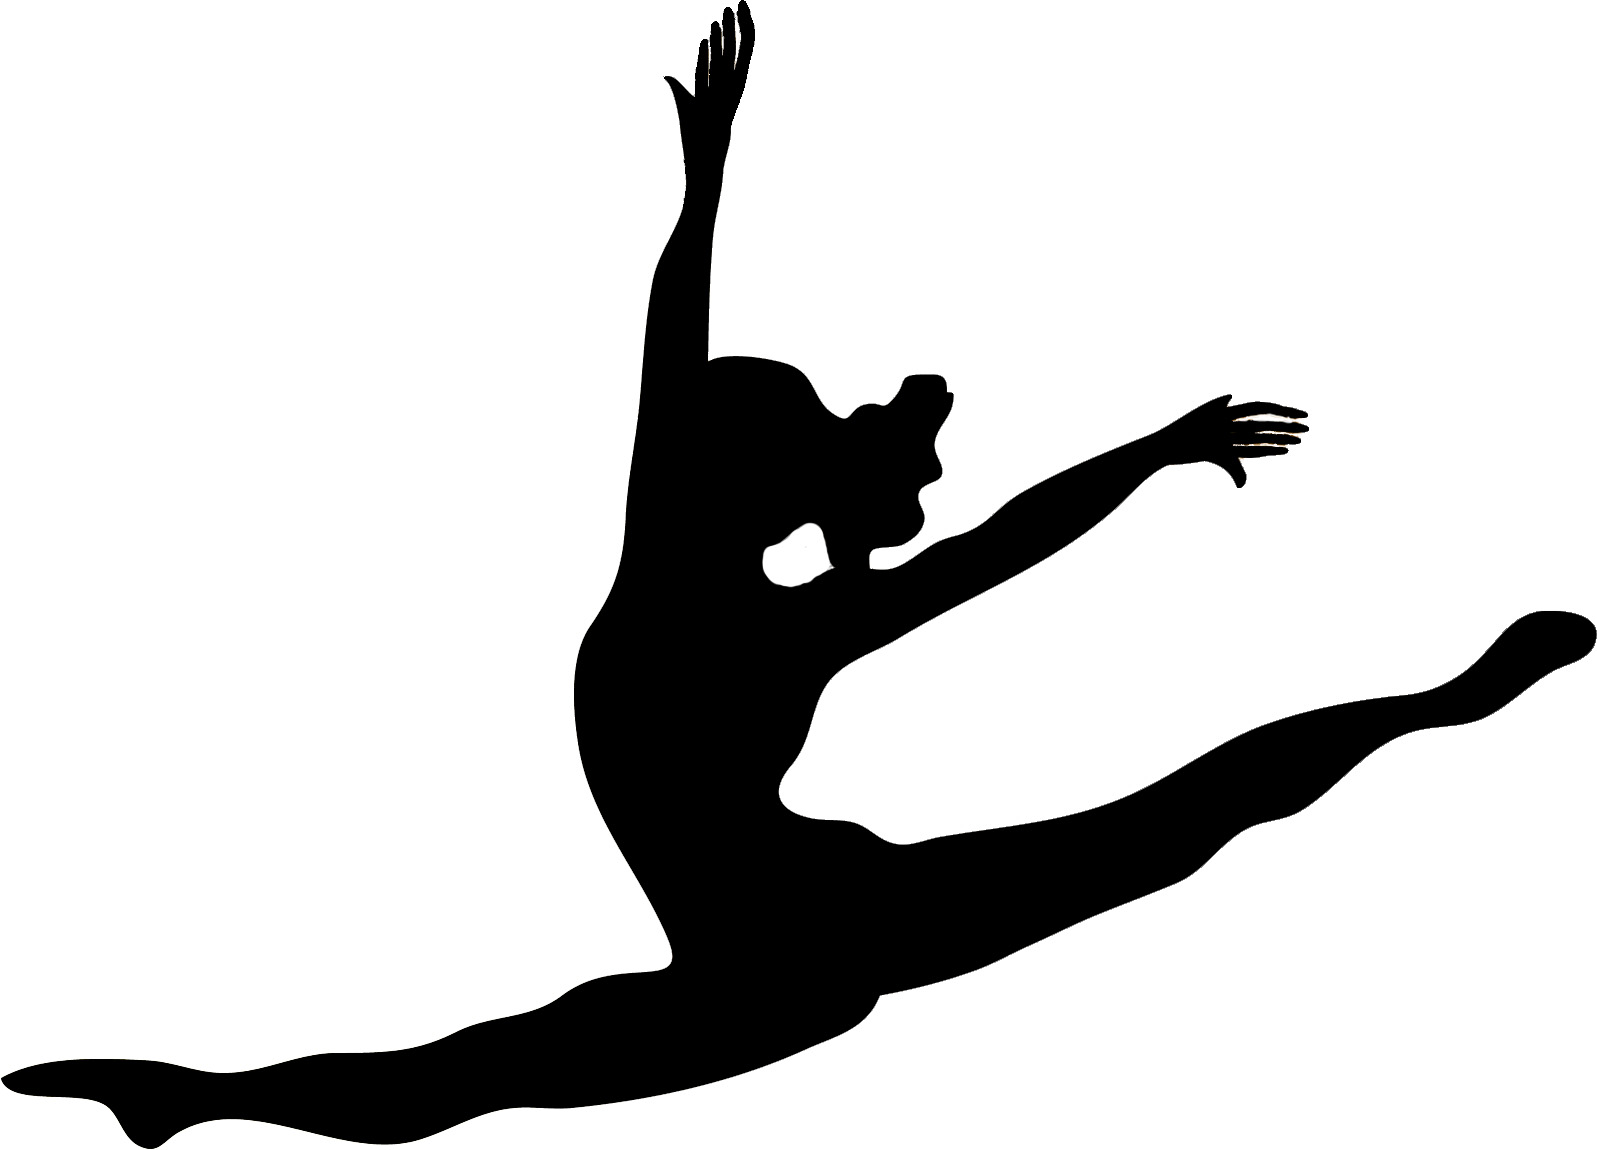 2021-22 WSHS Dance Team Tryouts